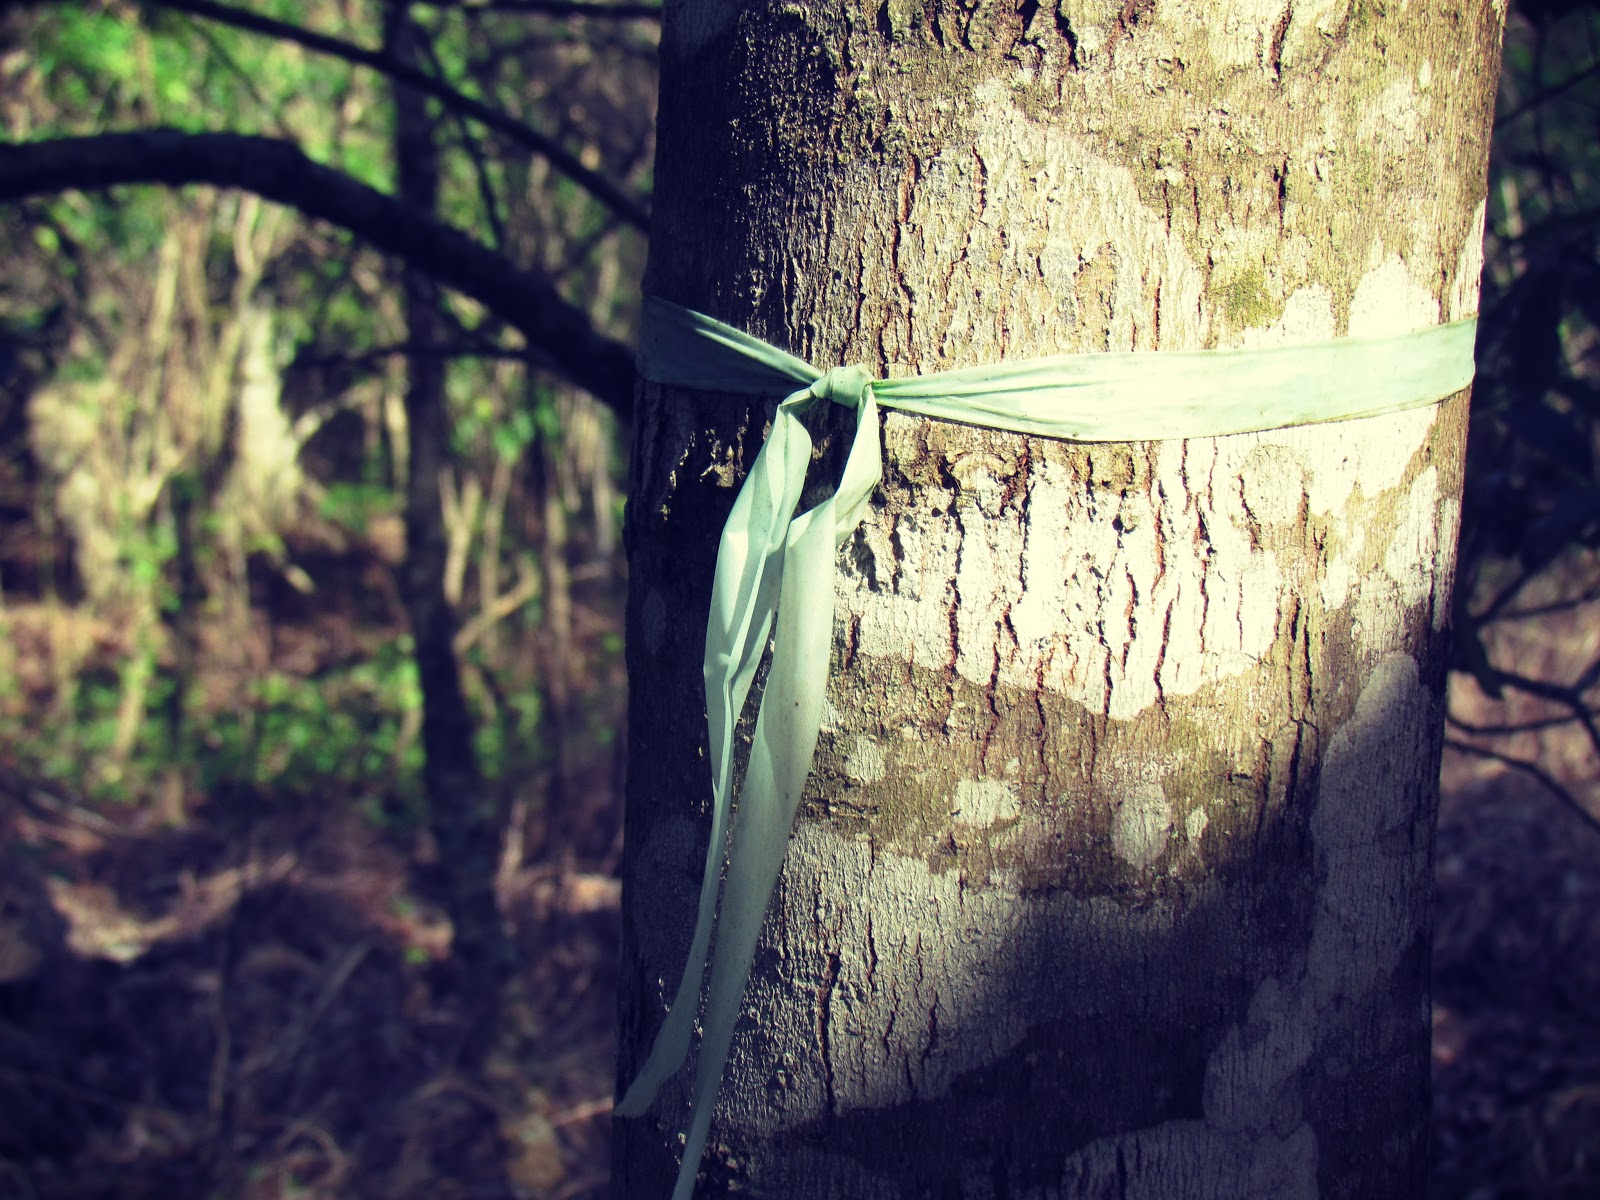 An aqua colored ribbon tied around an old oak tree in a Florida wetland in the summer